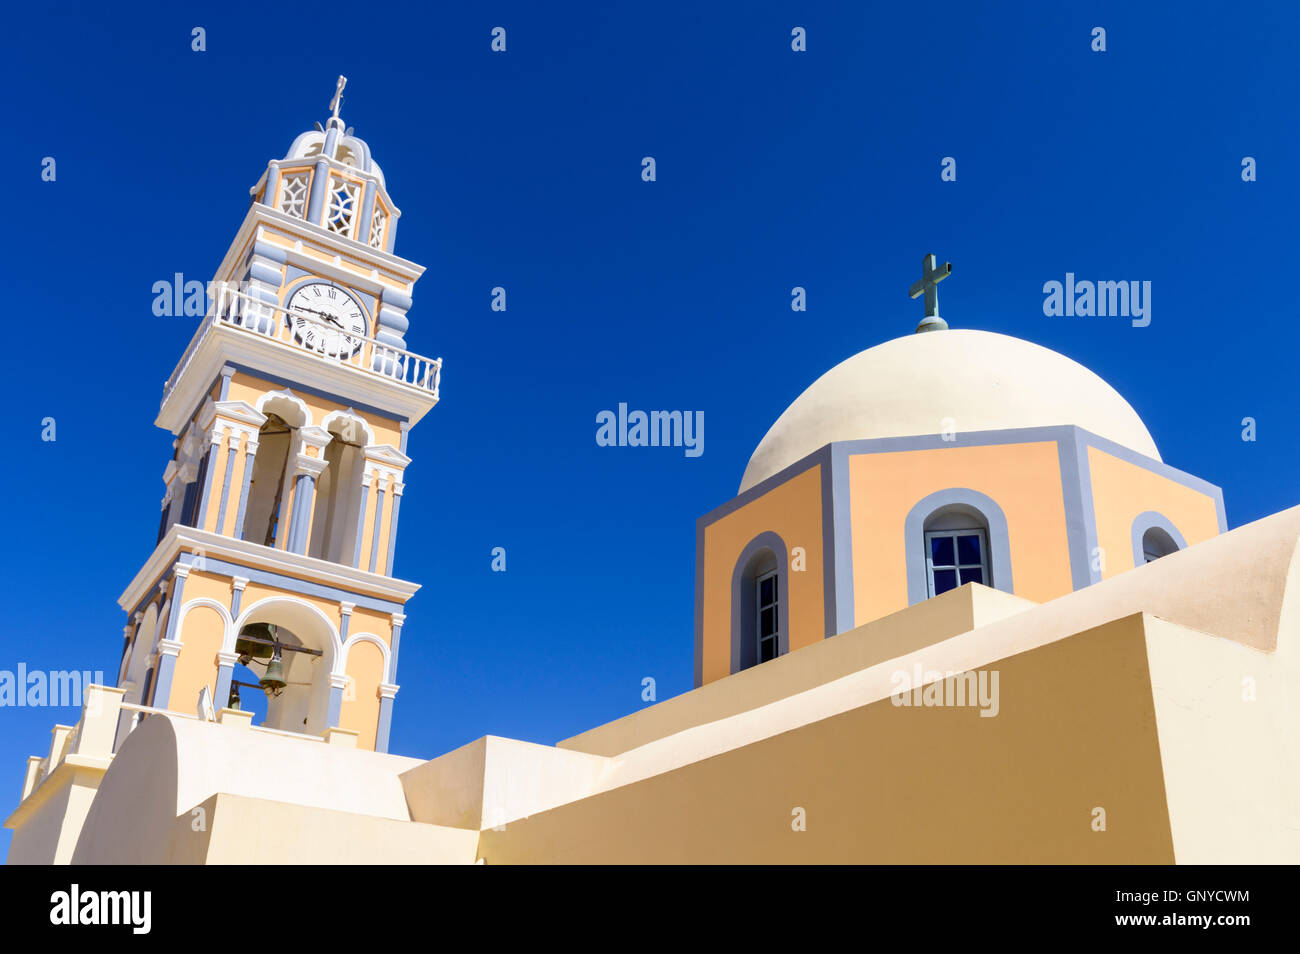 The distinctive St. John the Baptist Cathedral in Fira, Santorini, Cyclades, Greece - Stock Image